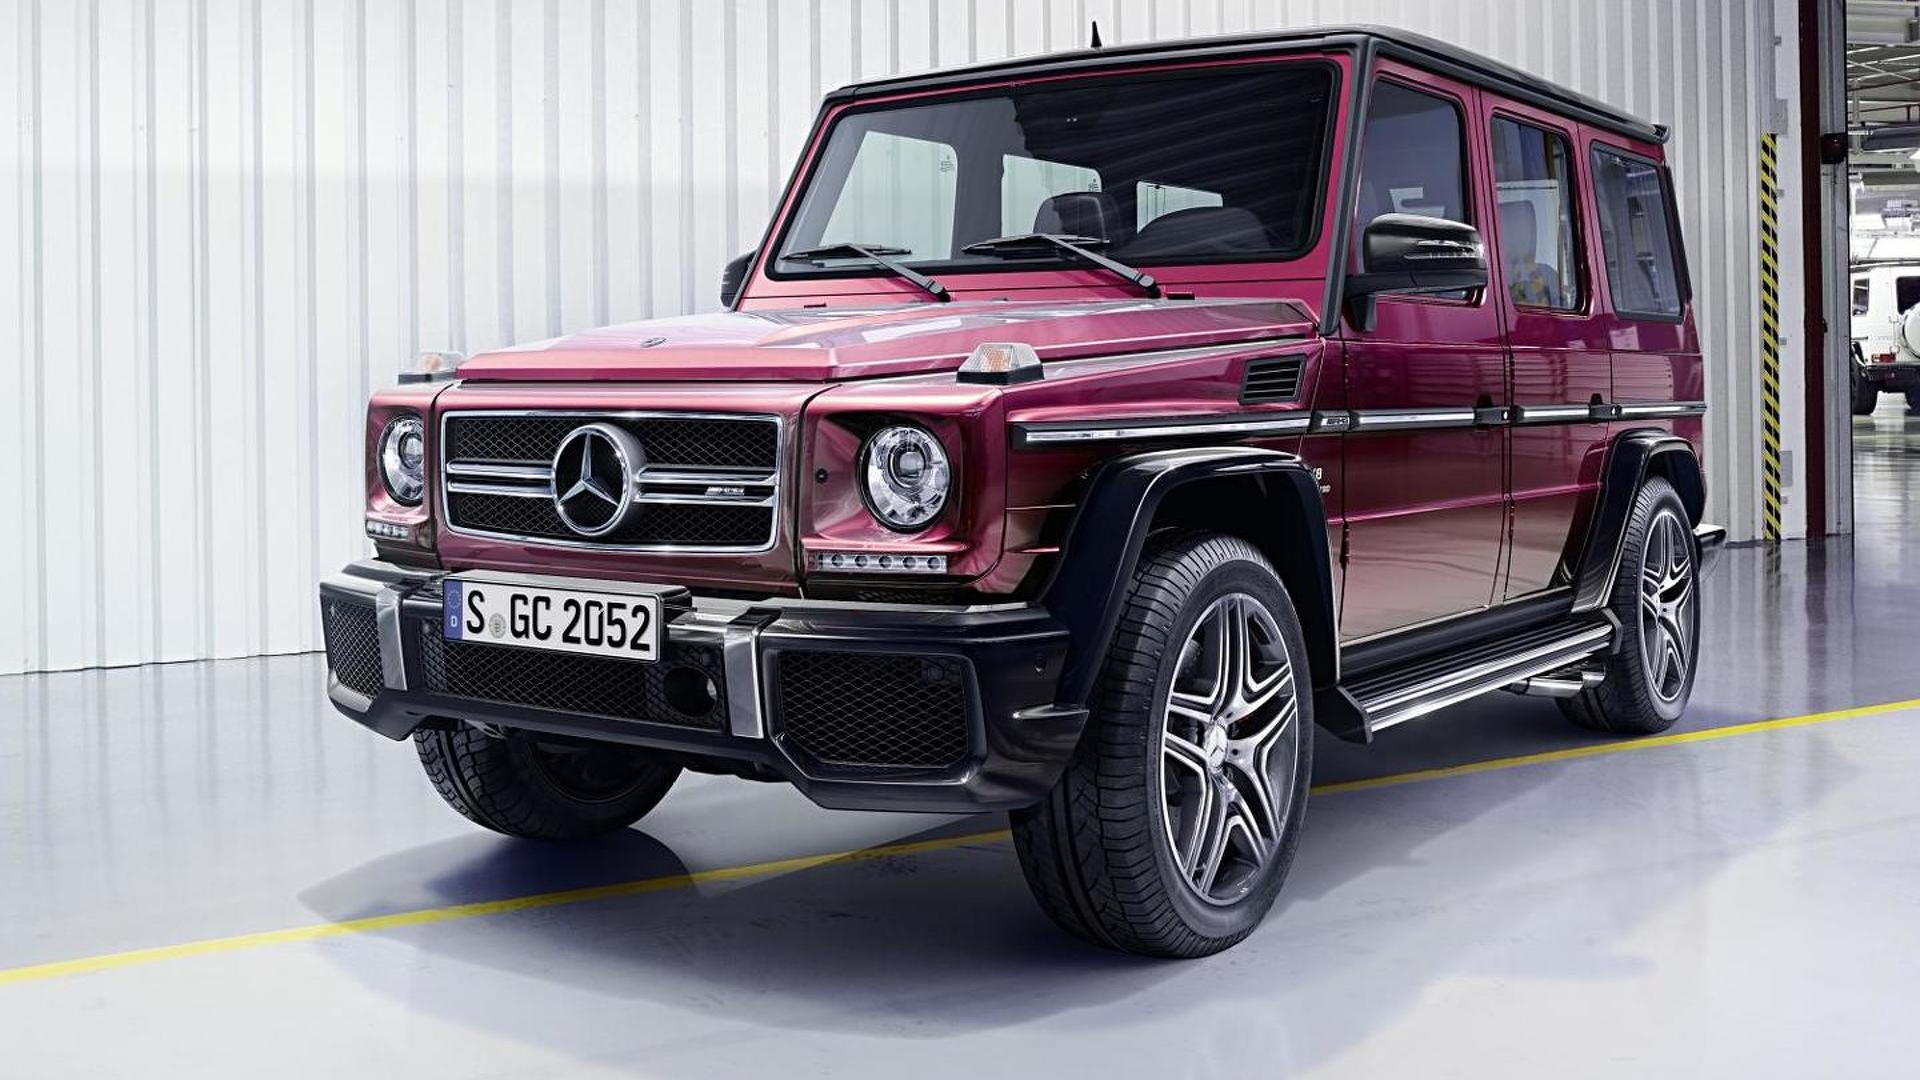 Mercedes benz g class news and reviews for Mercedes benz g class engine